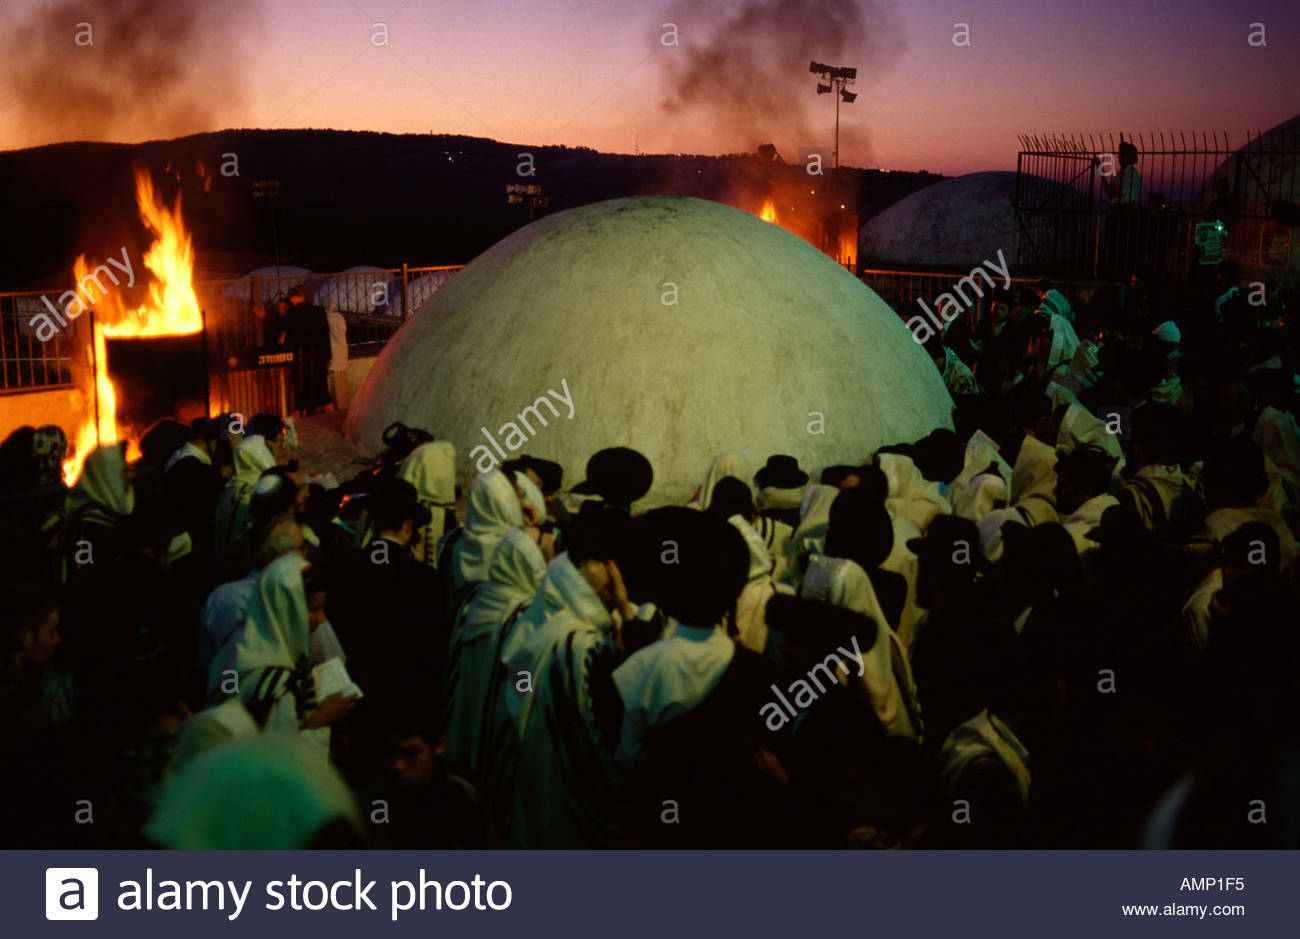 Religious Jews celebrate Lag Baomer Jewish feast at the tomb of Rabbi Shimon Bar Yochai in mount Meiron, Galilee Northern Israel - Stock Image